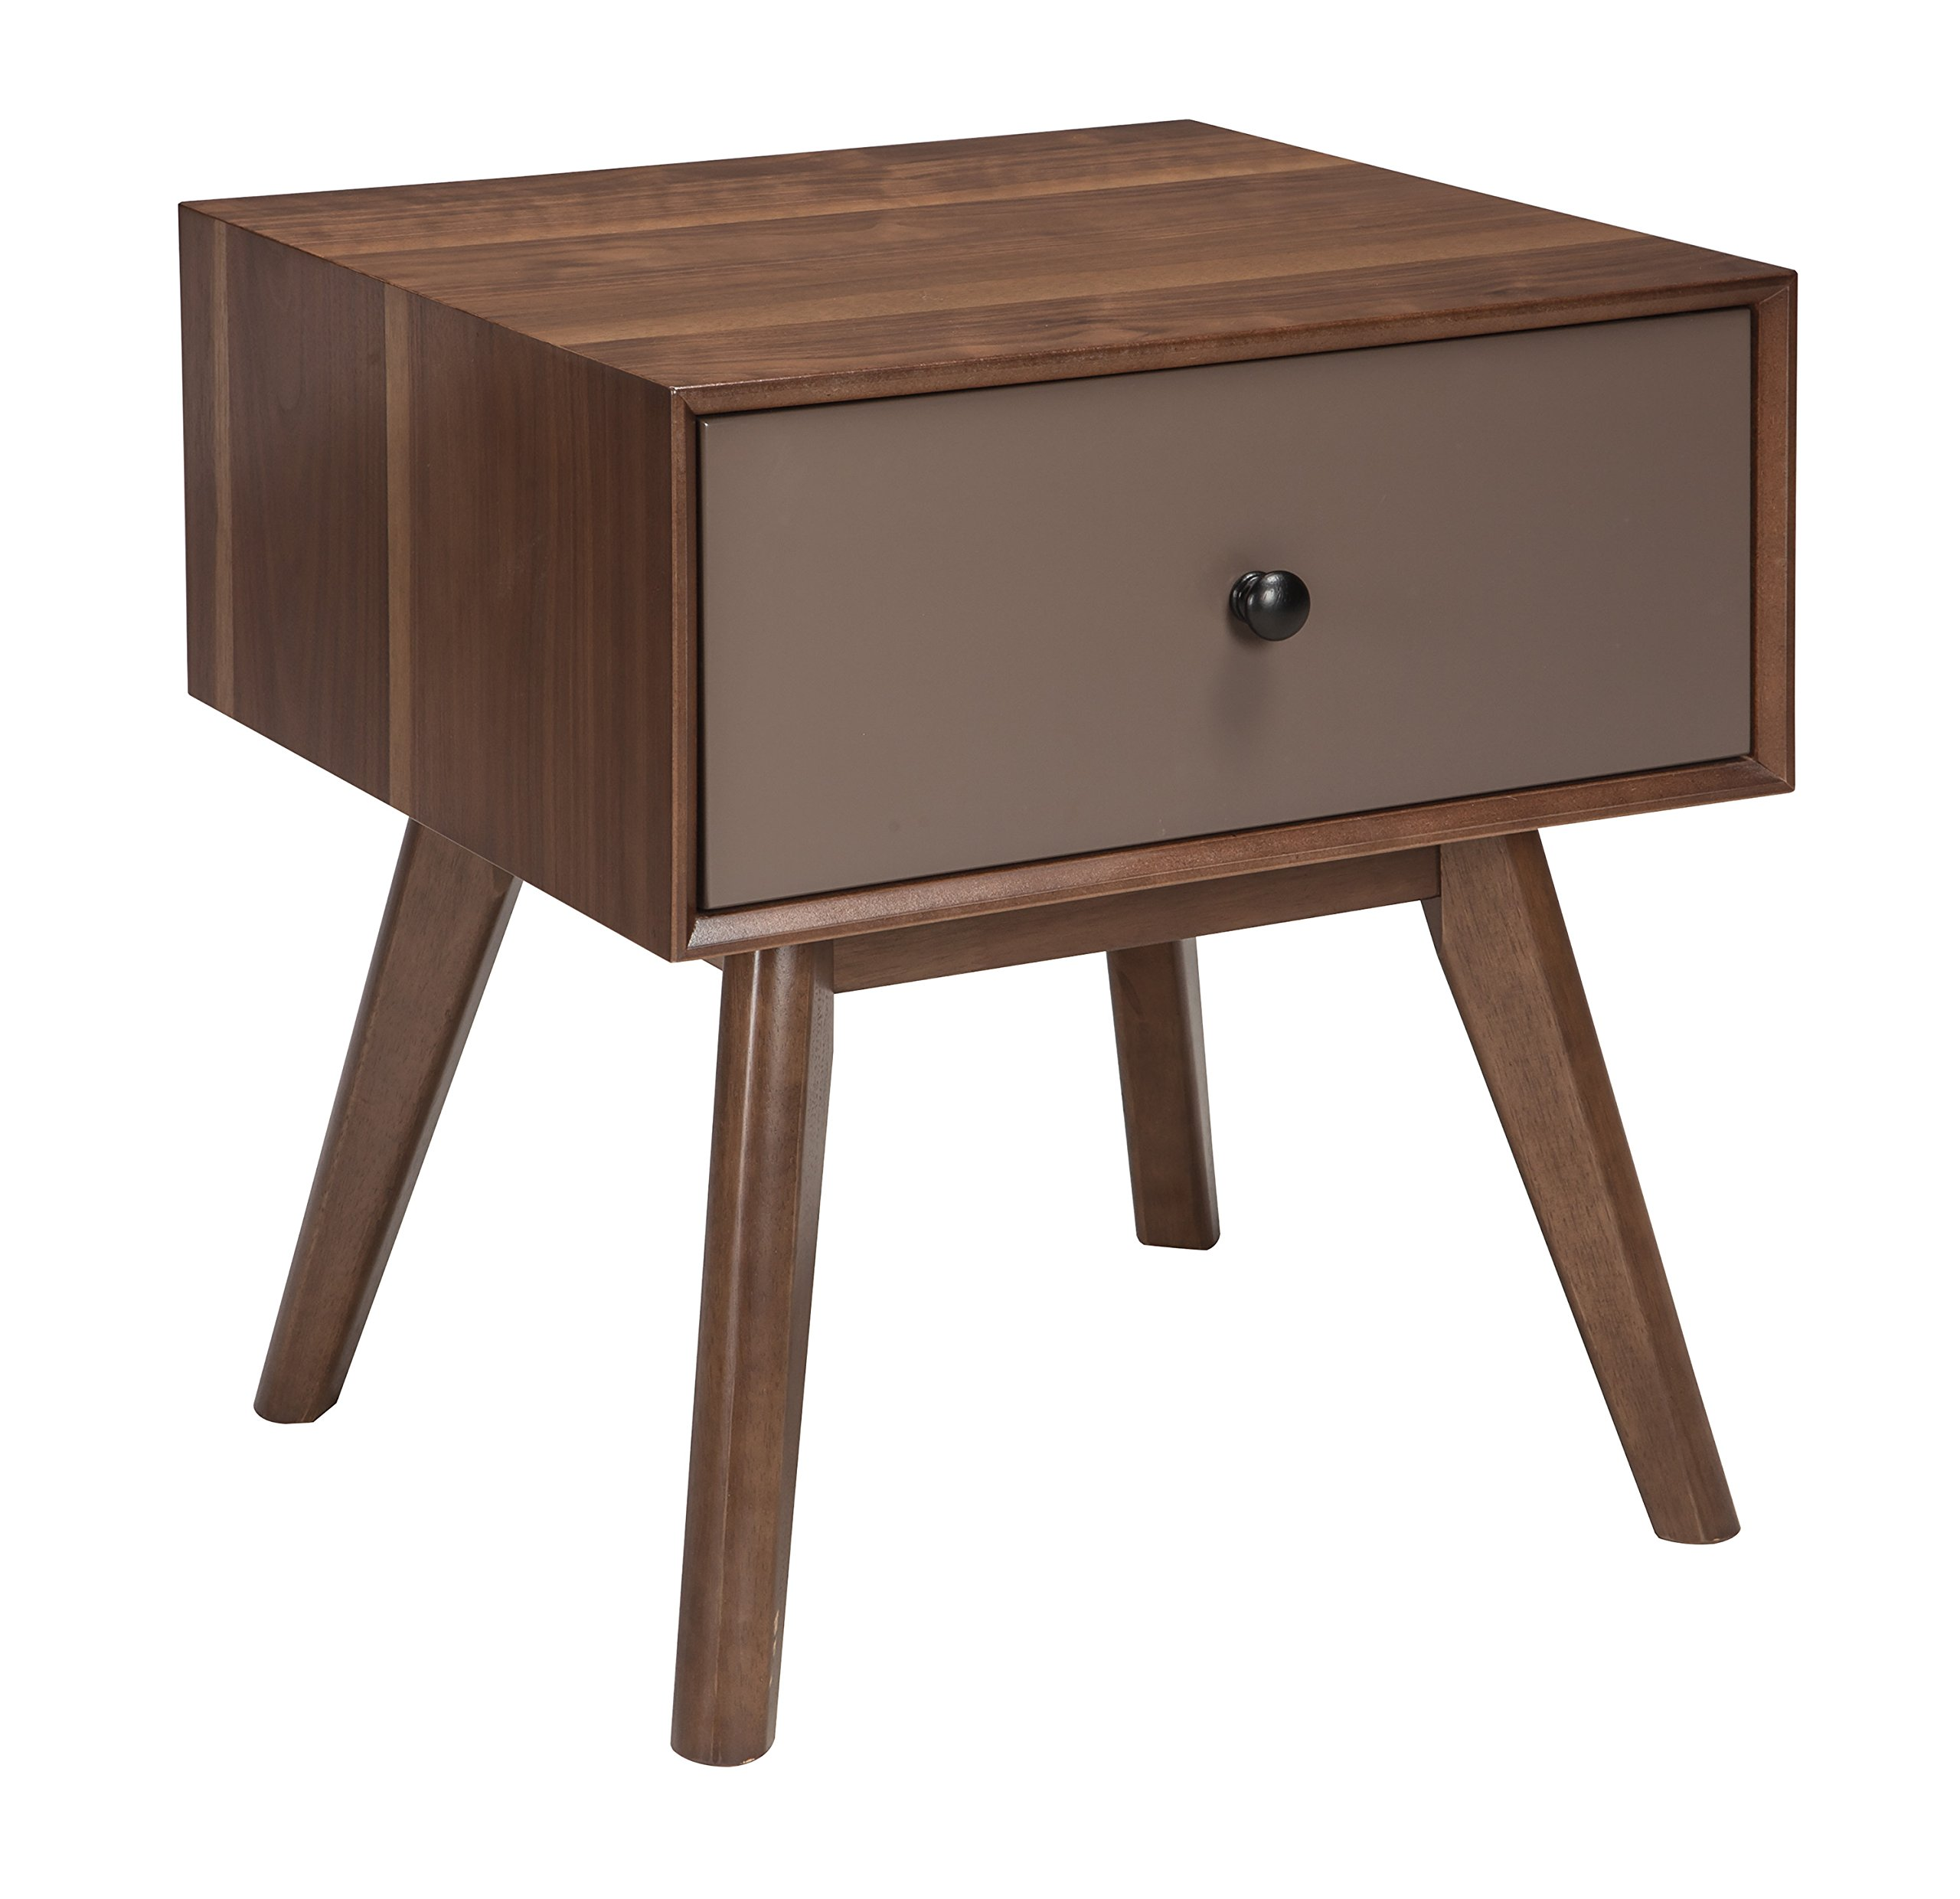 Signature Design by Ashley- Lynnifer Contemporary Rectangular End Table w/ Storage, Wood Two-Tone - MID CENTURY MODERN END TABLE: Oh-so trendy, but forever a classic, this accent table makes a striking statement wherever you set it. Cool canted legs add visual interest to the whole look HANDSOMELY CRAFTED: Made of veneers, wood and engineered wood. Accented with dark bronze-tone hardware. Designed with a smooth-gliding storage drawer TWO-TONE FINISH: Warm walnut-tone veneers pair beautifully with the matte taupe-tone drawer fronts, for a showstopper finish you simply can't beat - living-room-furniture, living-room, end-tables - 81EV2hAx9%2BL -